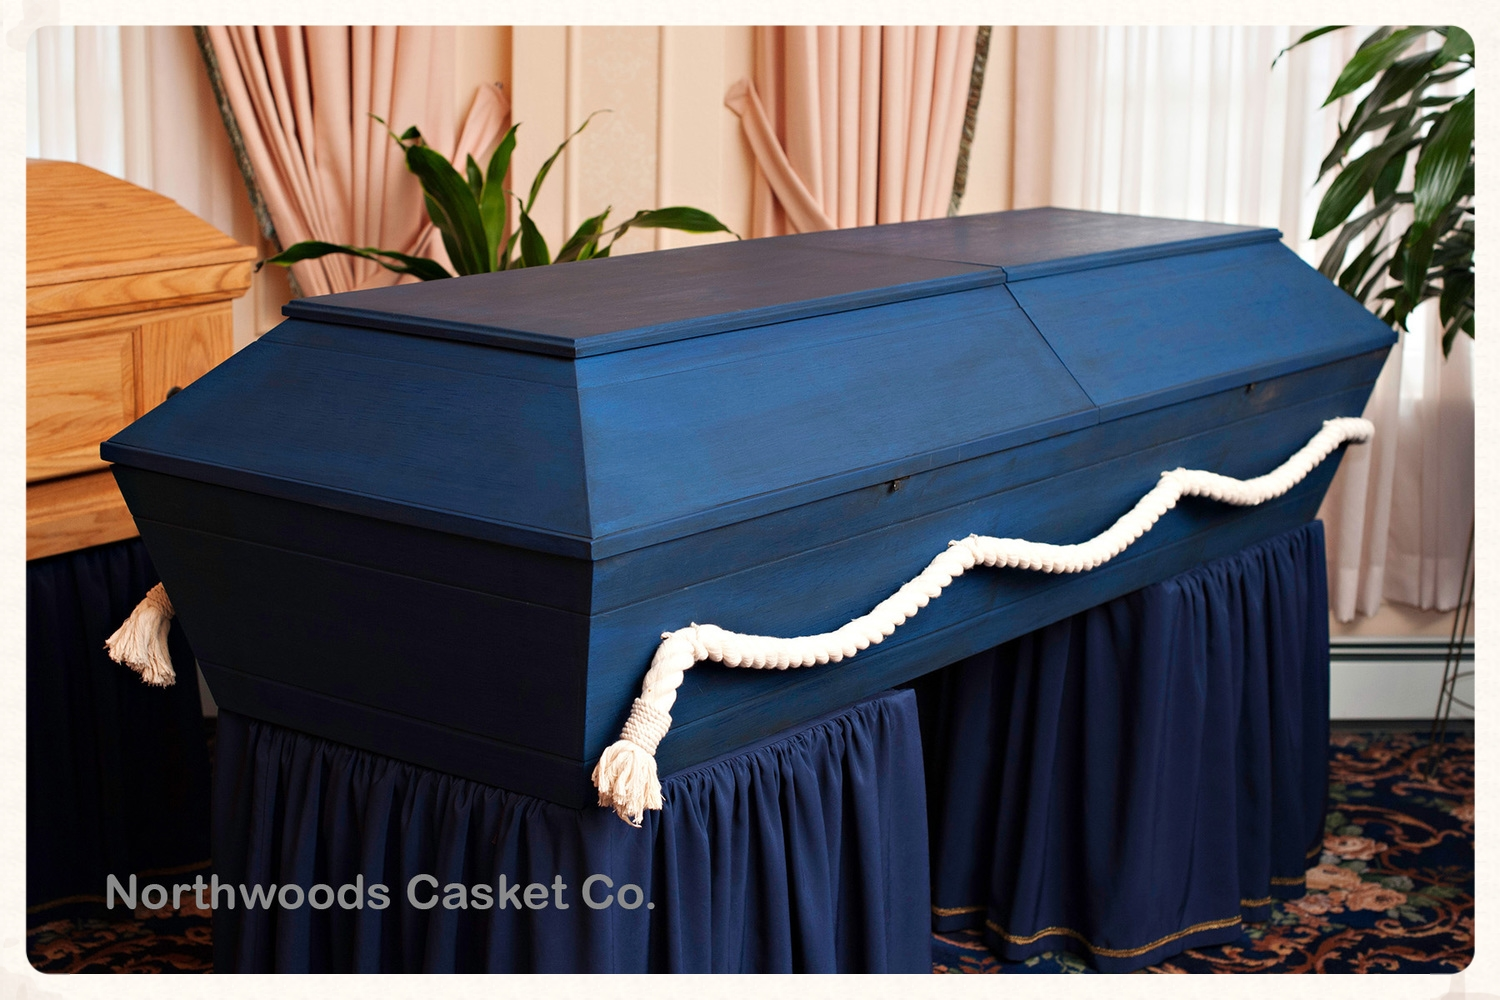 This casket was painted with two coats of blue milk paint followed by two coats of dark raw tung oil for a rich ocean water affect.